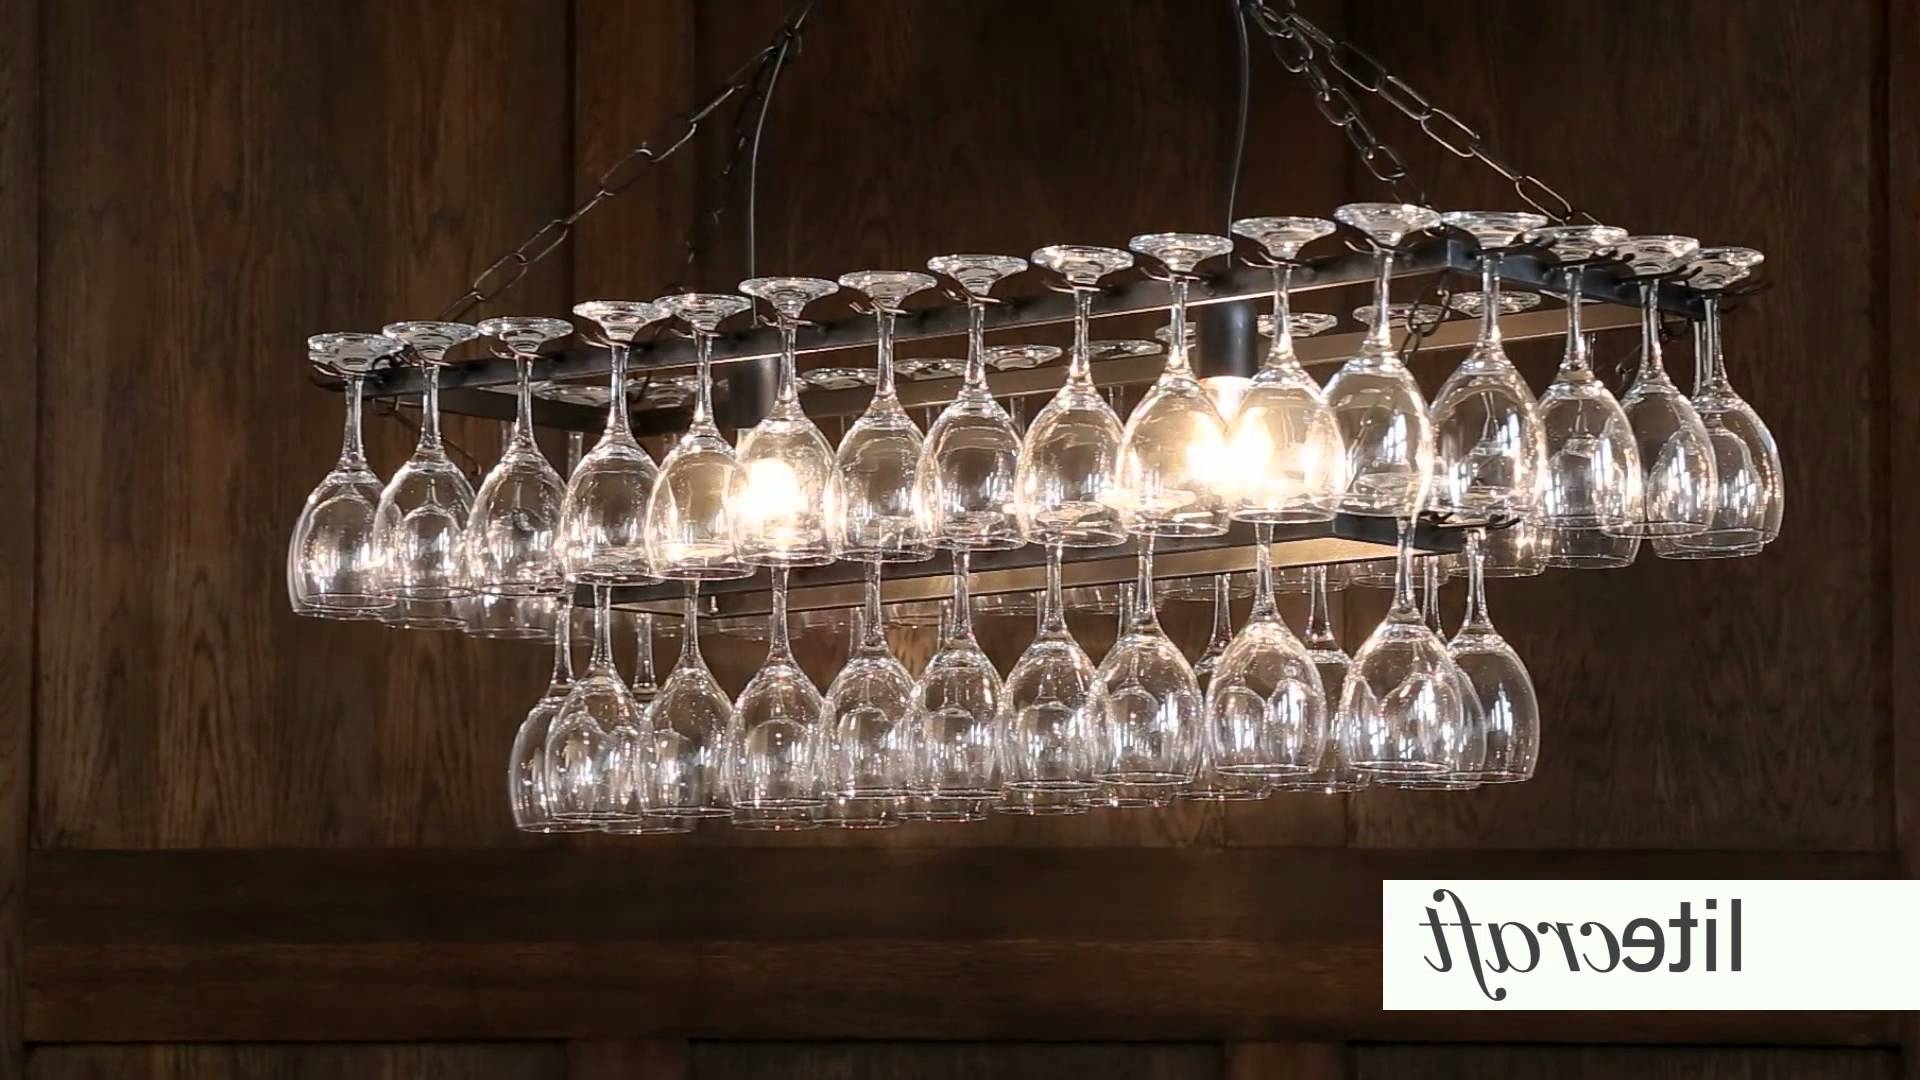 Litecraft – Lighting Your Home – Youtube For Popular Glass Chandeliers (View 15 of 20)